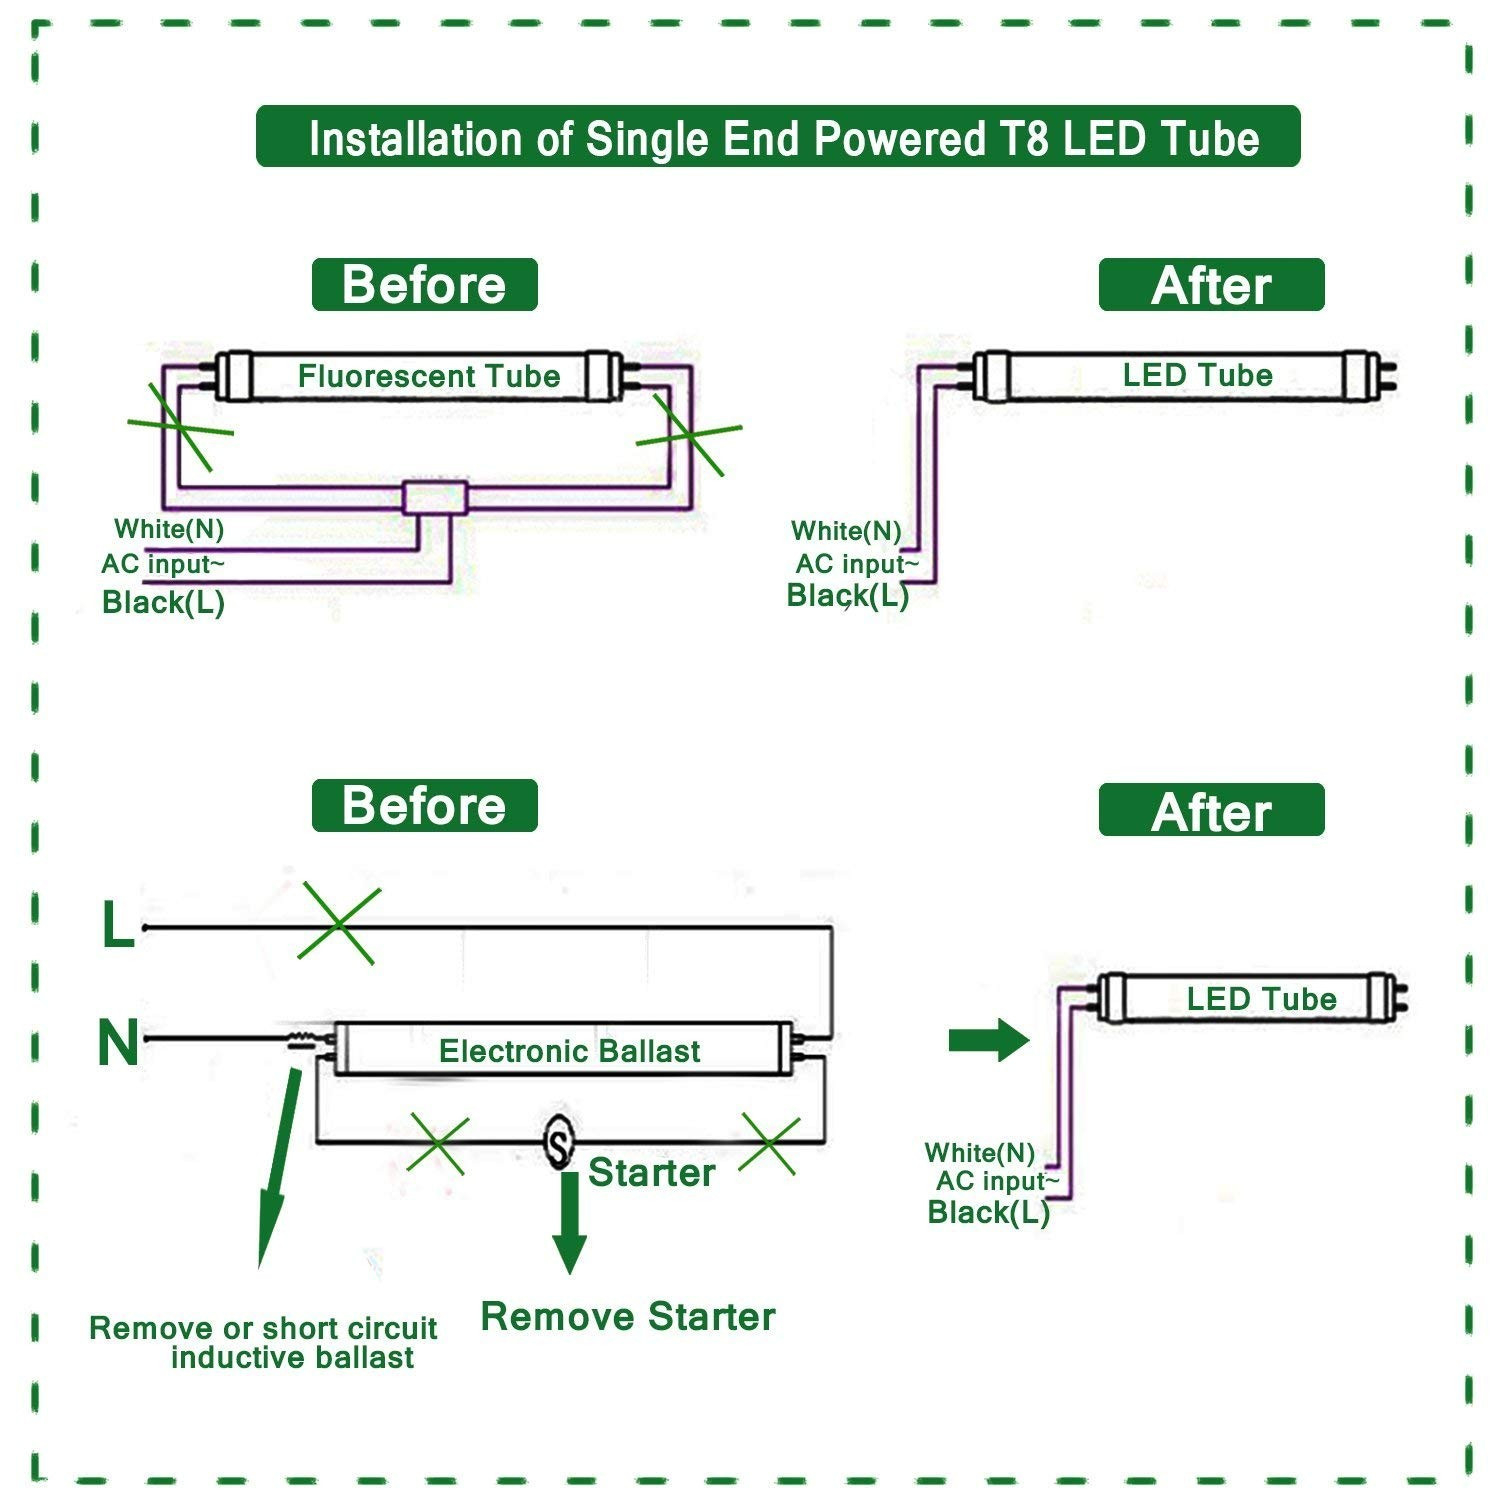 led fluorescent tube replacement wiring diagram Collection-Wiring Diagram for Fluorescent Light Fresh Wiring Diagram for Led Tubes Refrence Wiring Diagram Led Tube 7-a